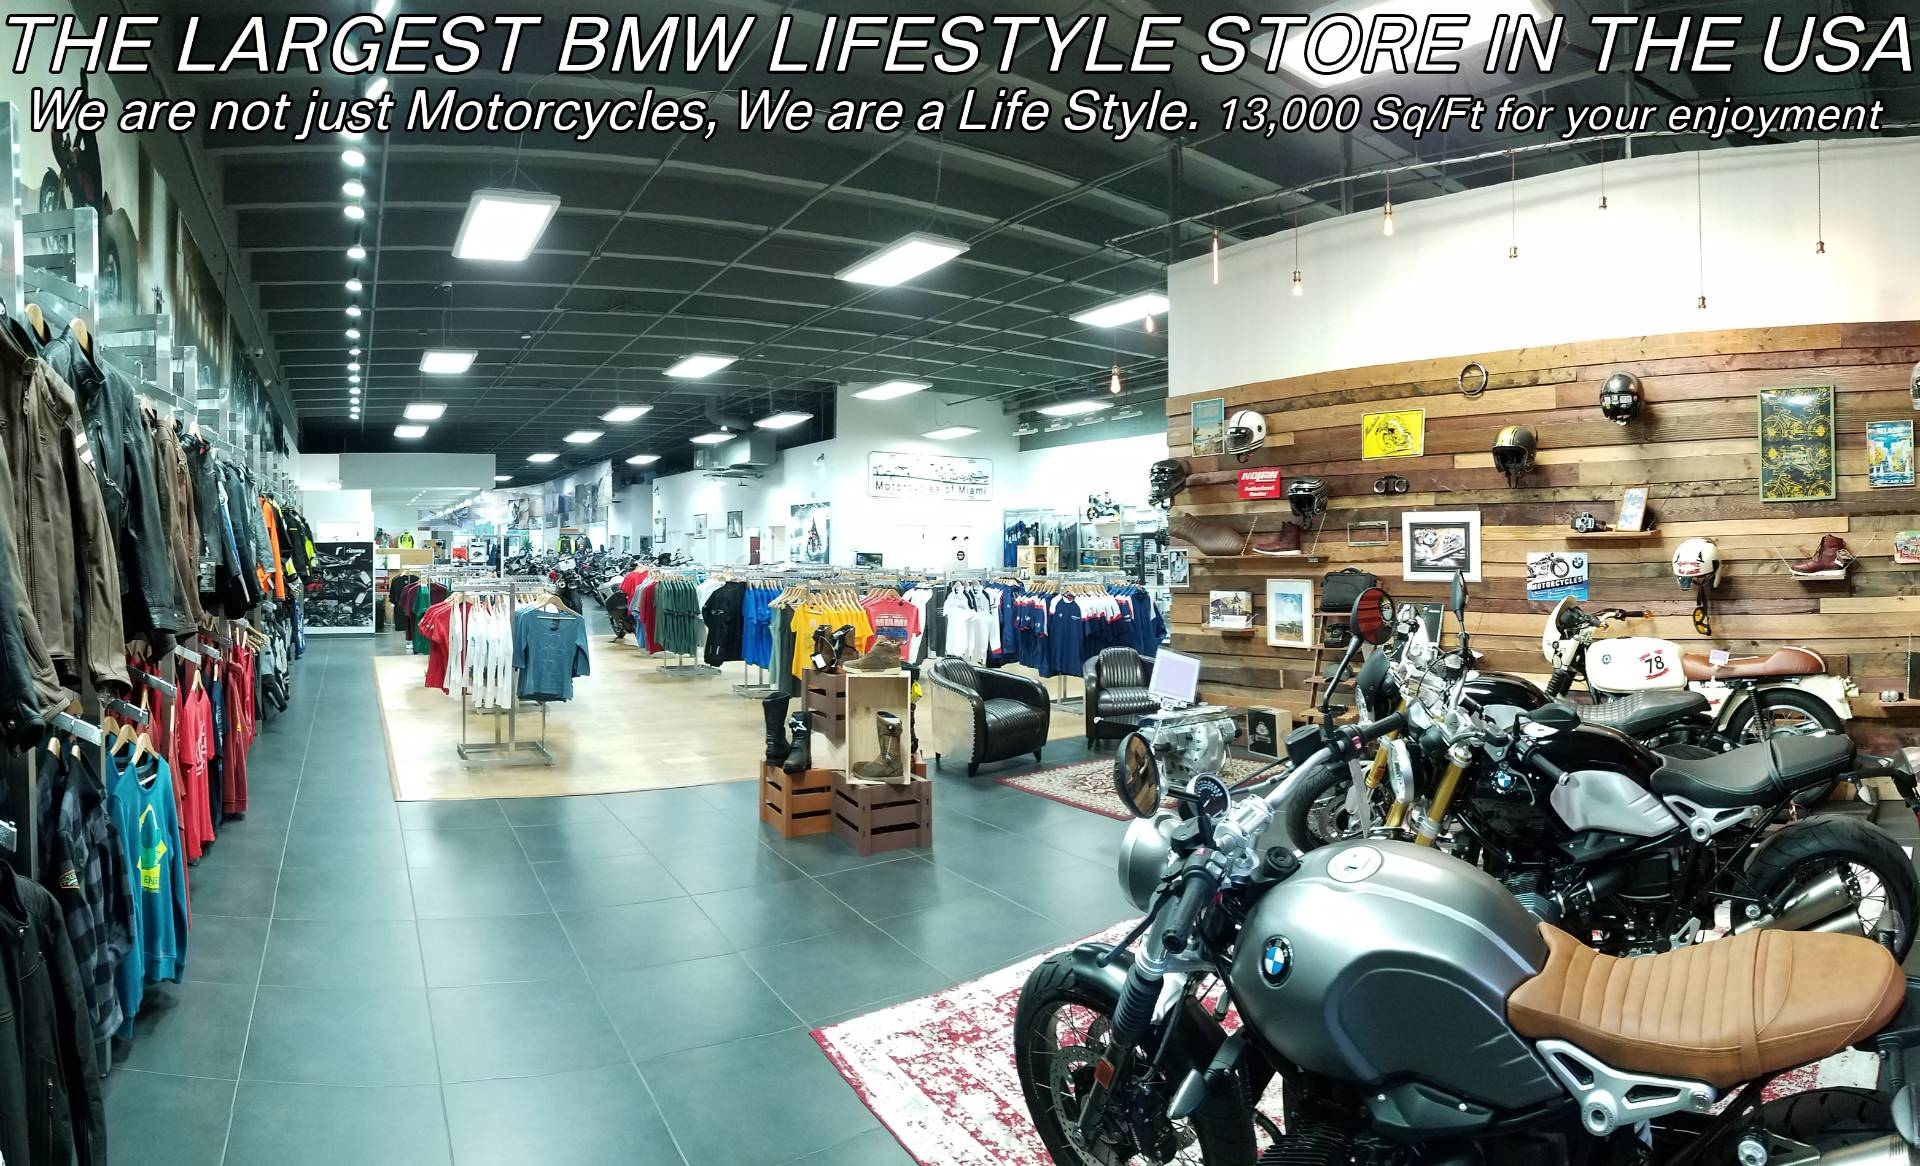 New 2019 BMW S 1000 R for sale, BMW S 1000R for sale, BMW Motorcycle S1000R, new BMW R, Sport, roadster, naked. BMW Motorcycles of Miami, Motorcycles of Miami, Motorcycles Miami, New Motorcycles, Used Motorcycles, pre-owned. #BMWMotorcyclesOfMiami #MotorcyclesOfMiami #MotorcyclesMiami - Photo 25